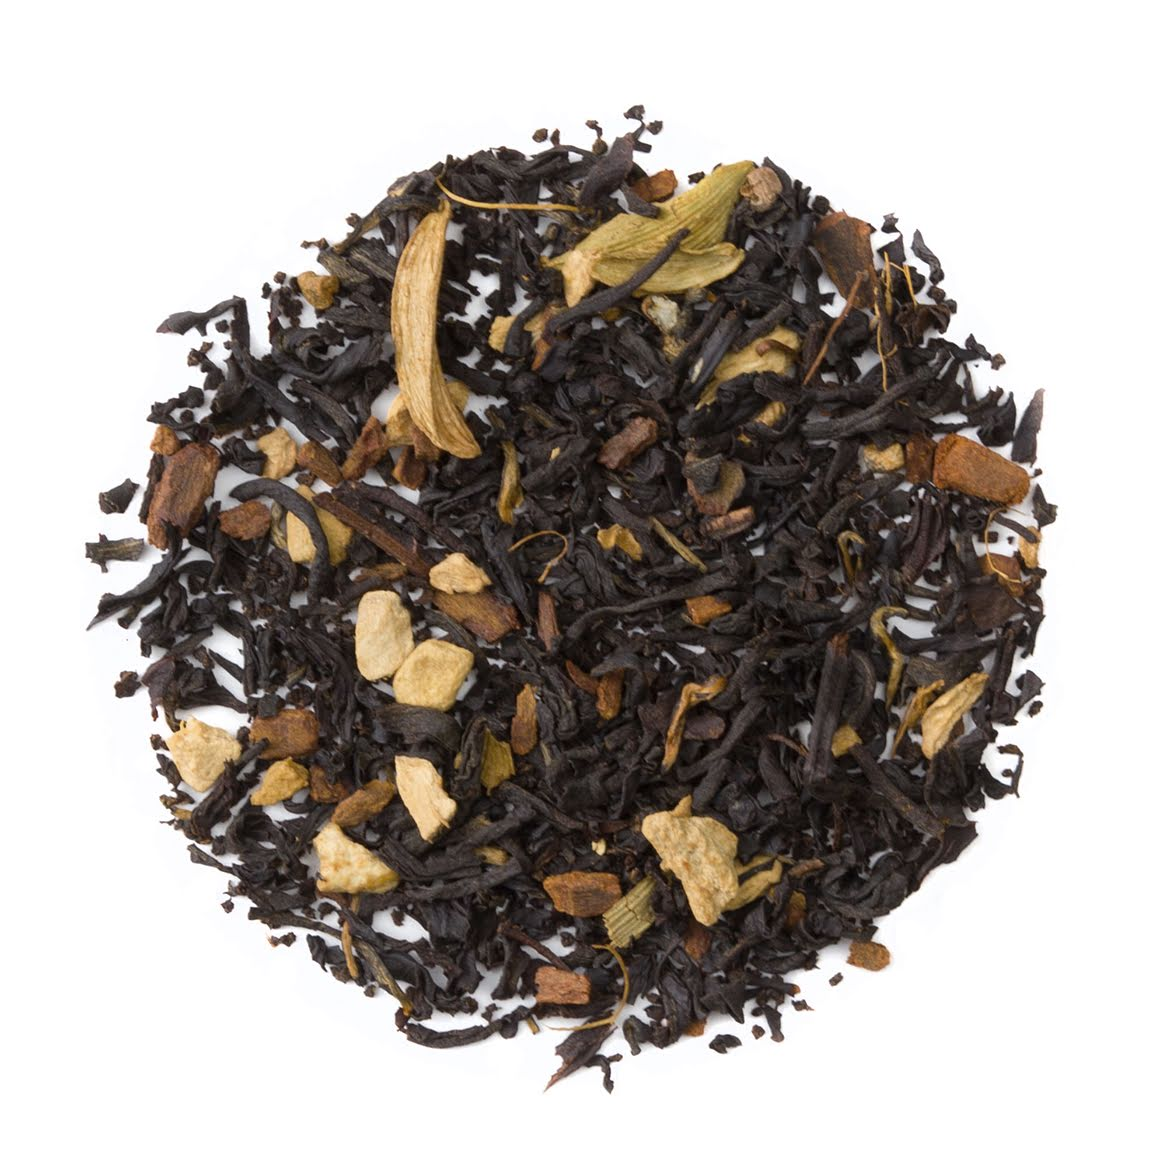 Loose Leaf Black Tea - Organic Black Tea - Premium Black Tea - Heavenly Tea Leaves